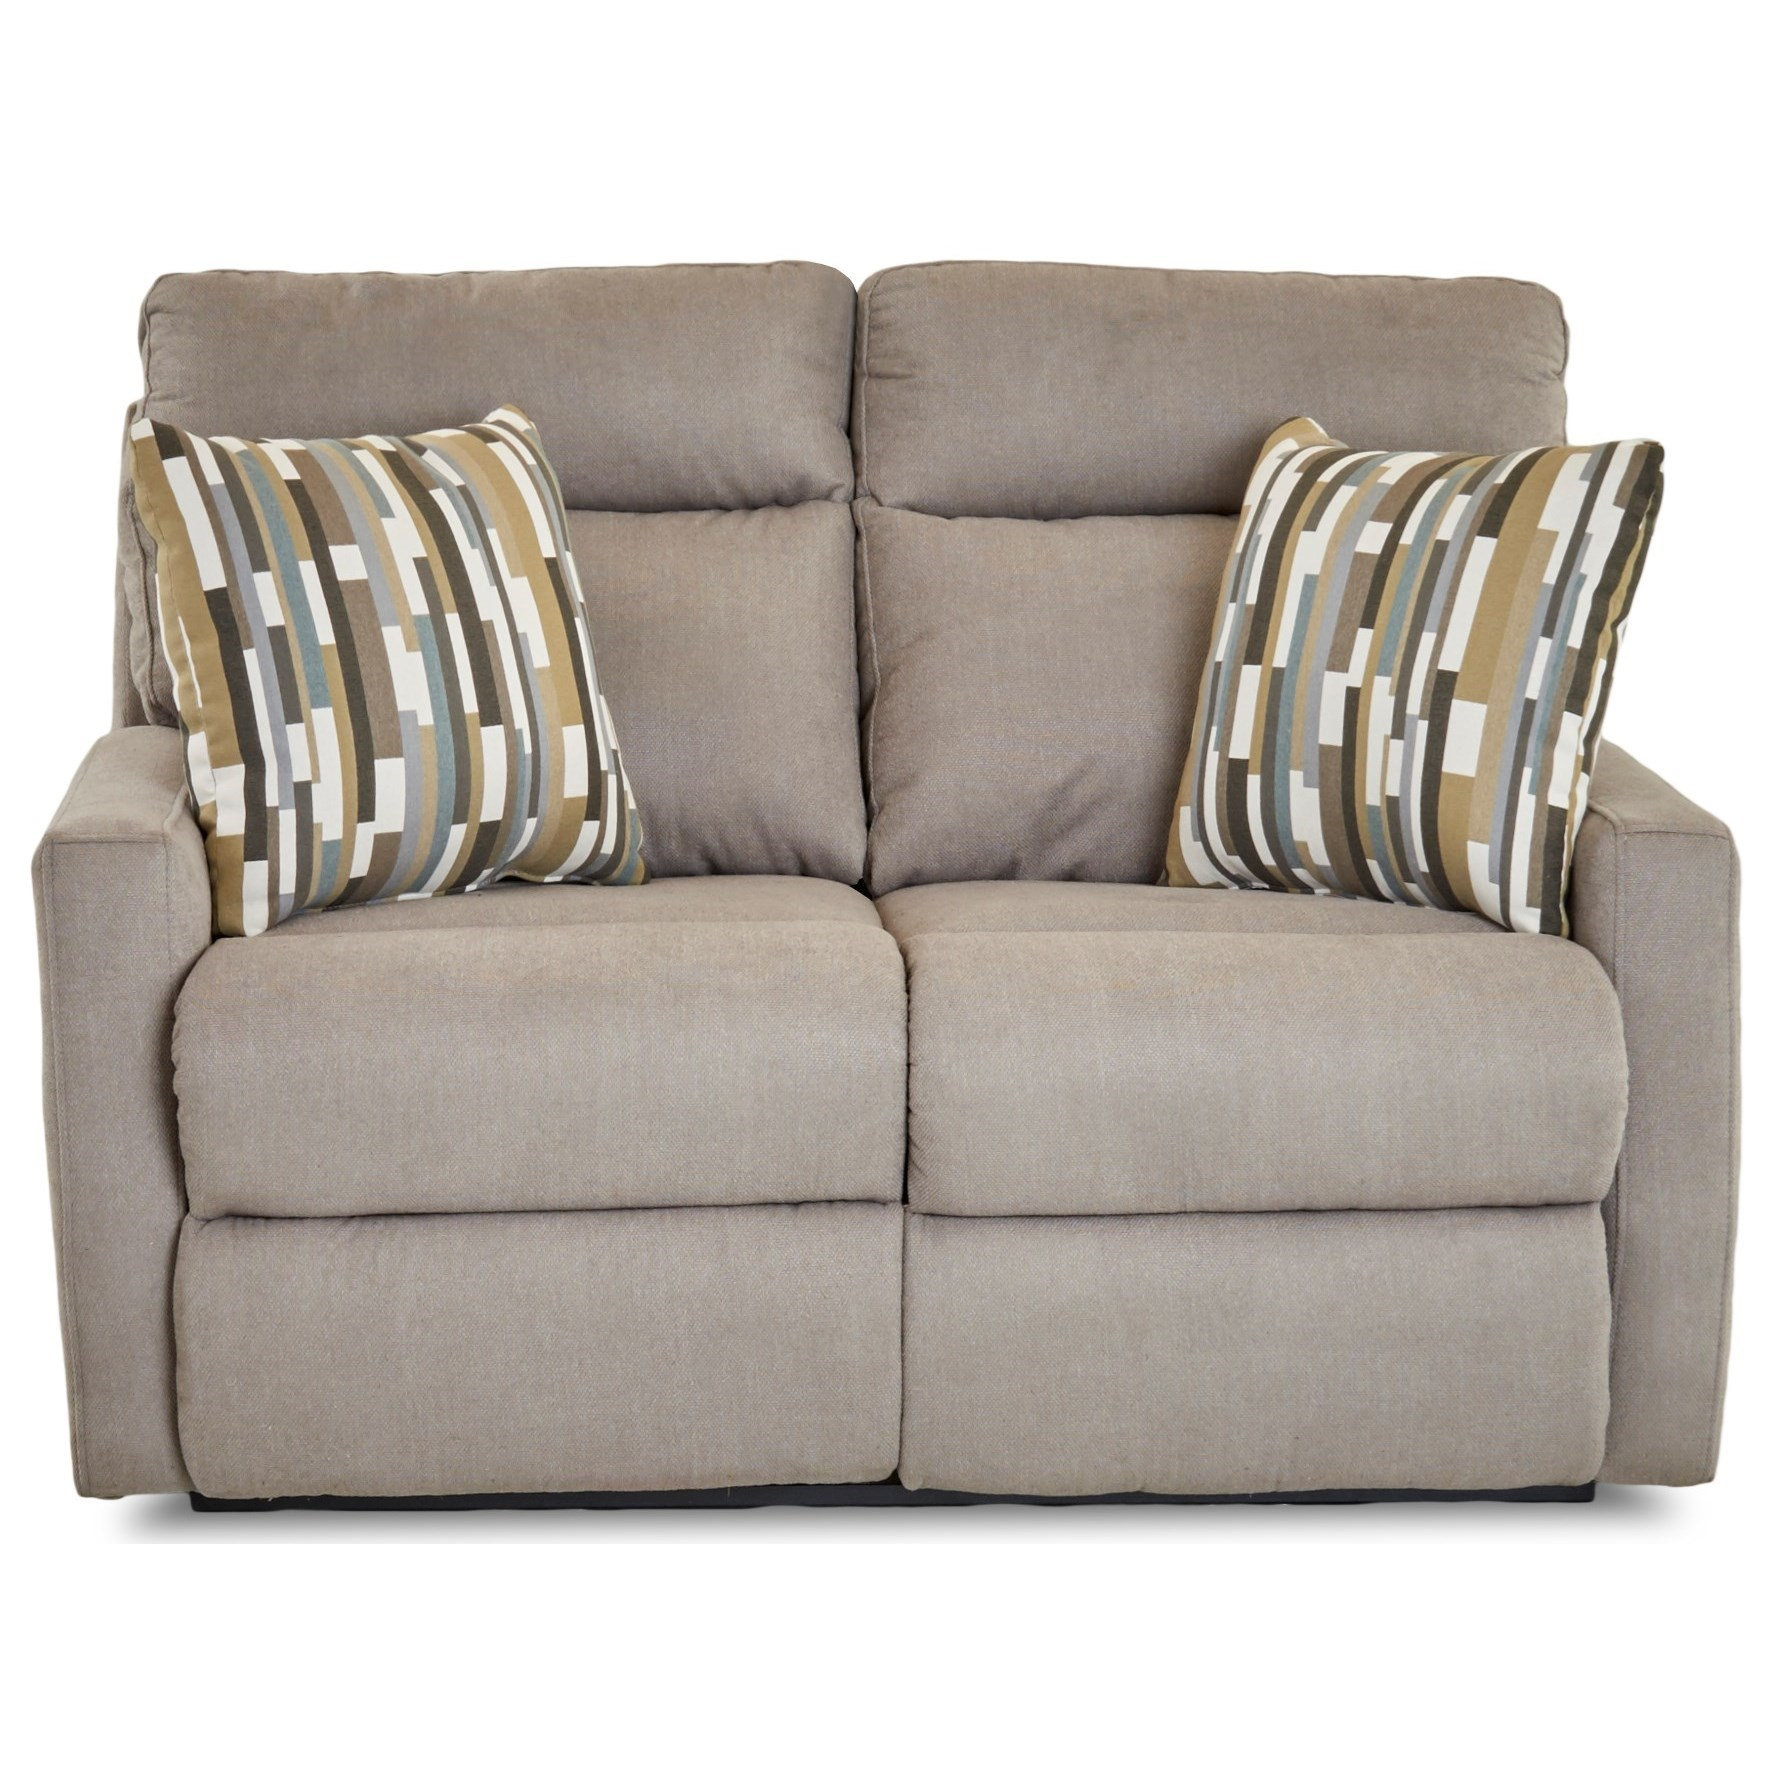 Daphne Power Reclining Loveseat w/ Pillows by Klaussner at Johnny Janosik